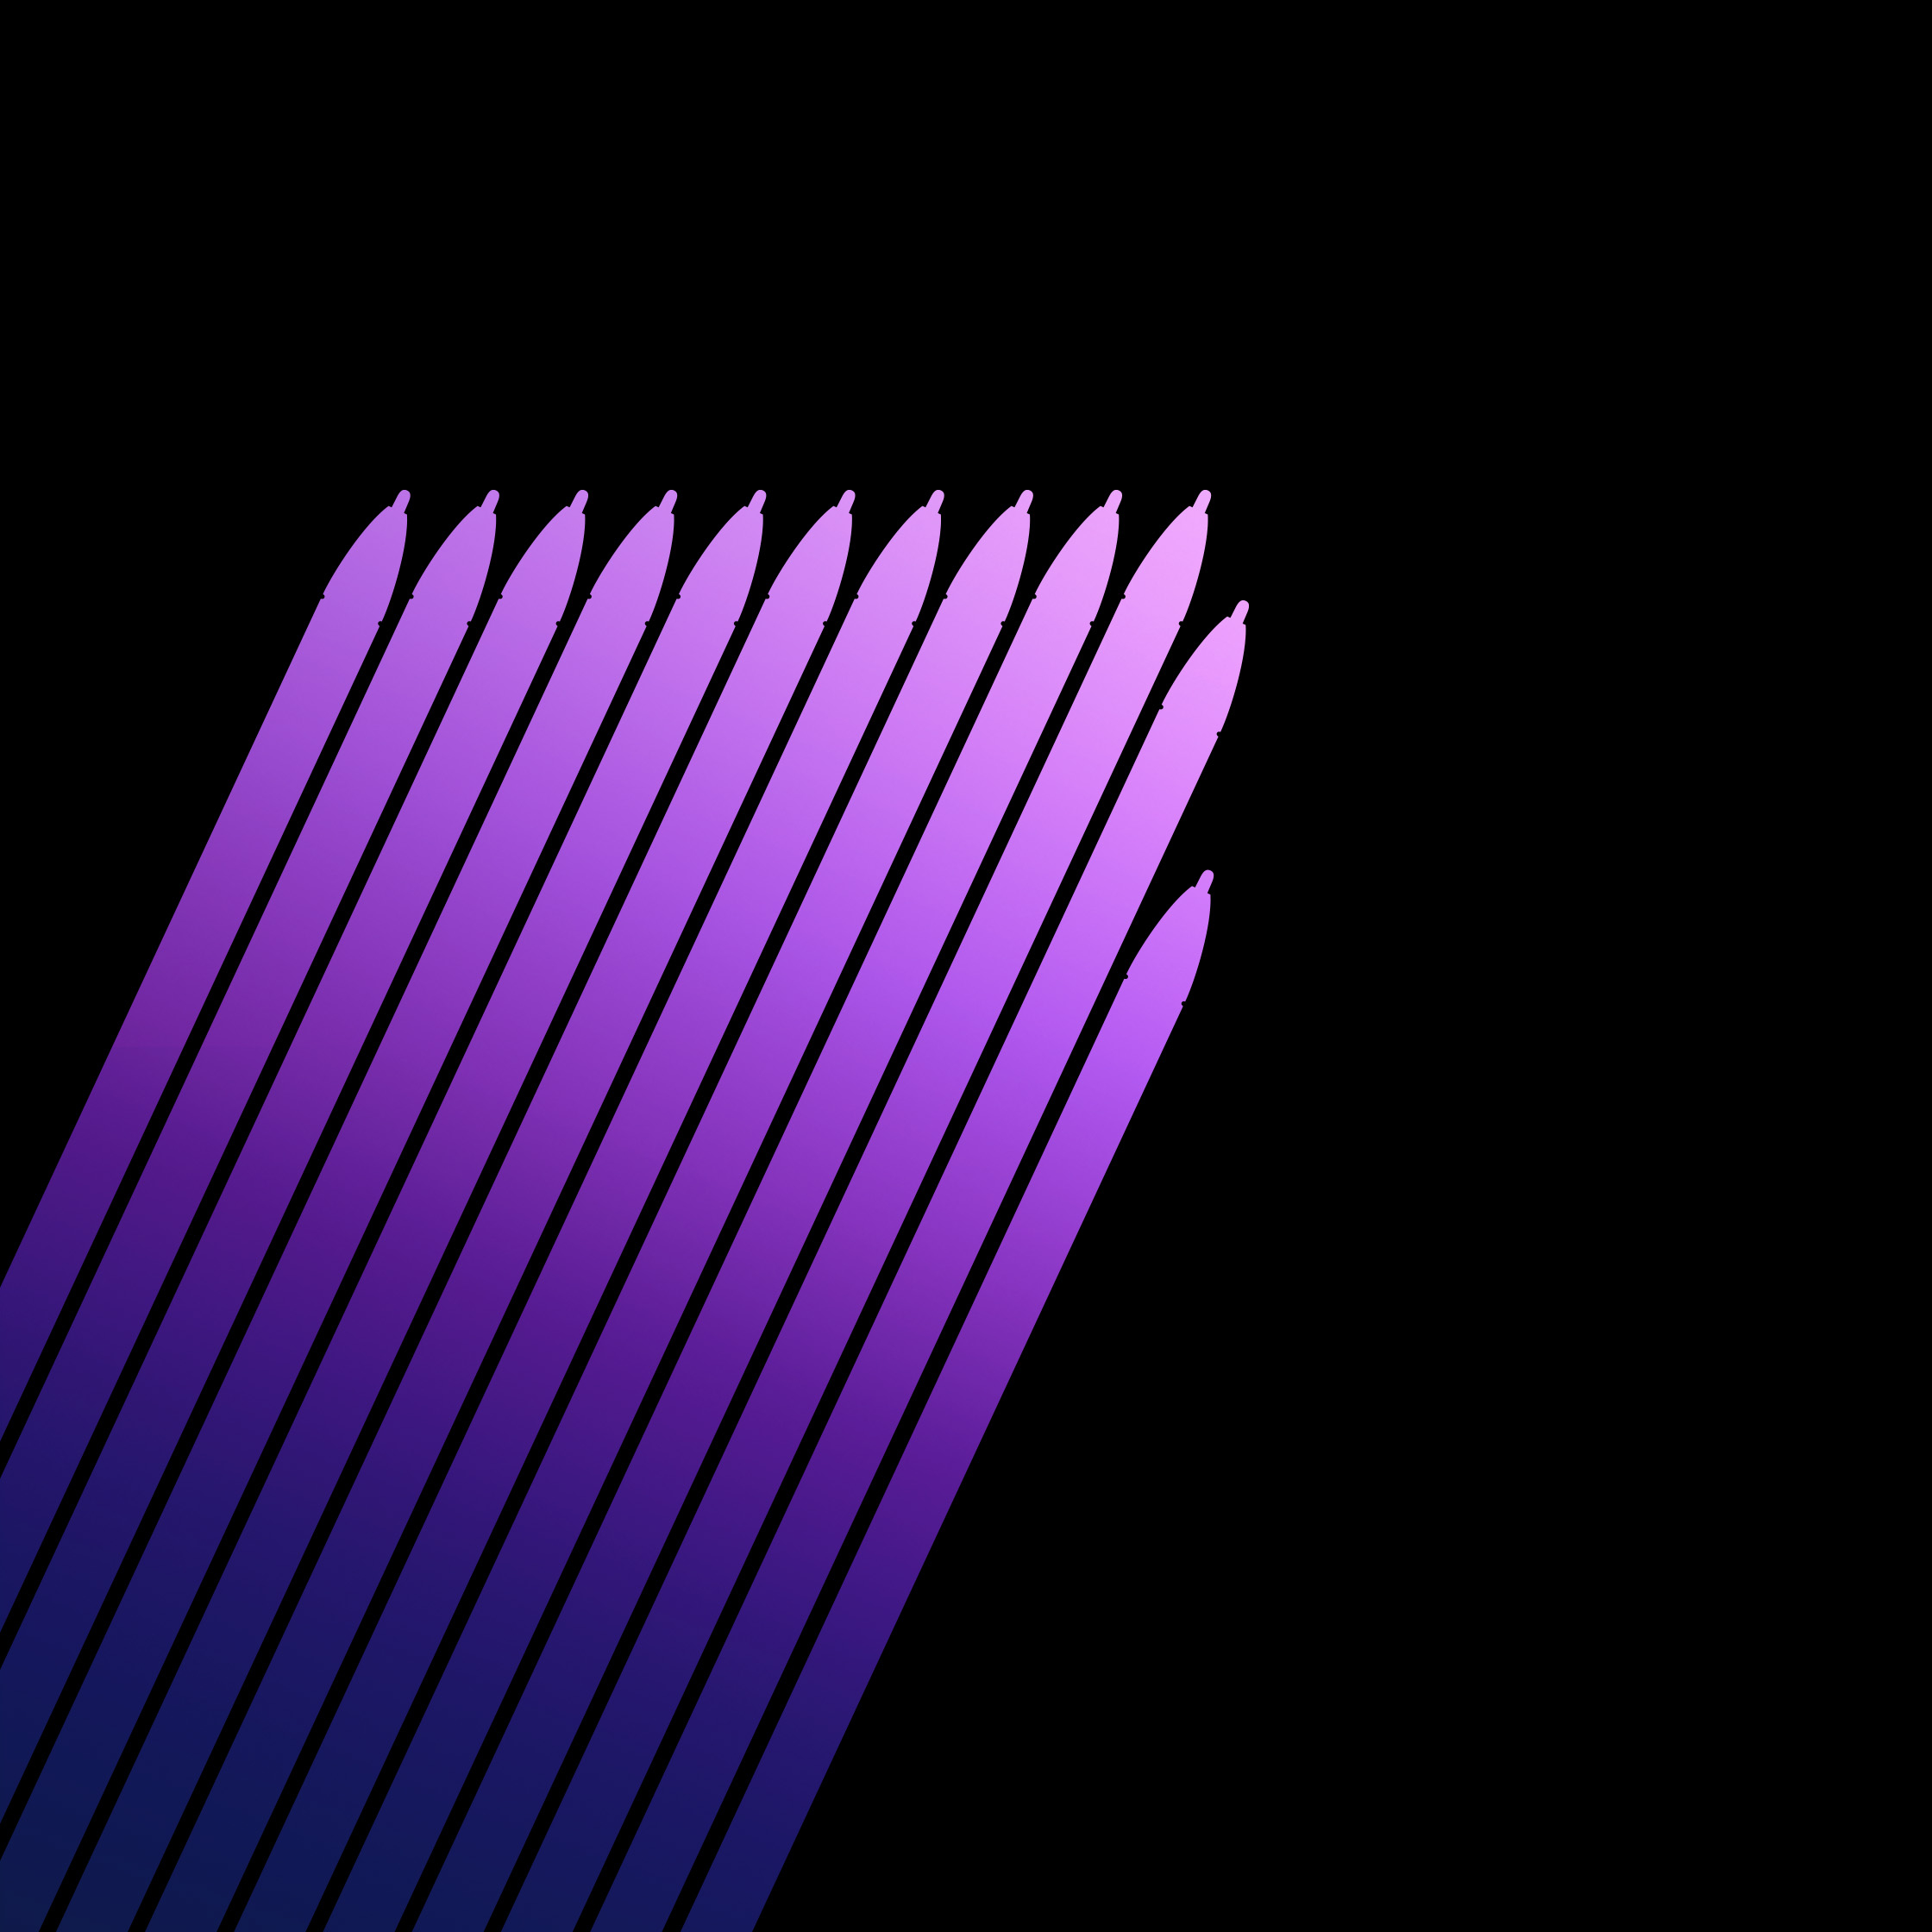 Galaxy Note 7 wallpapers leak download them here